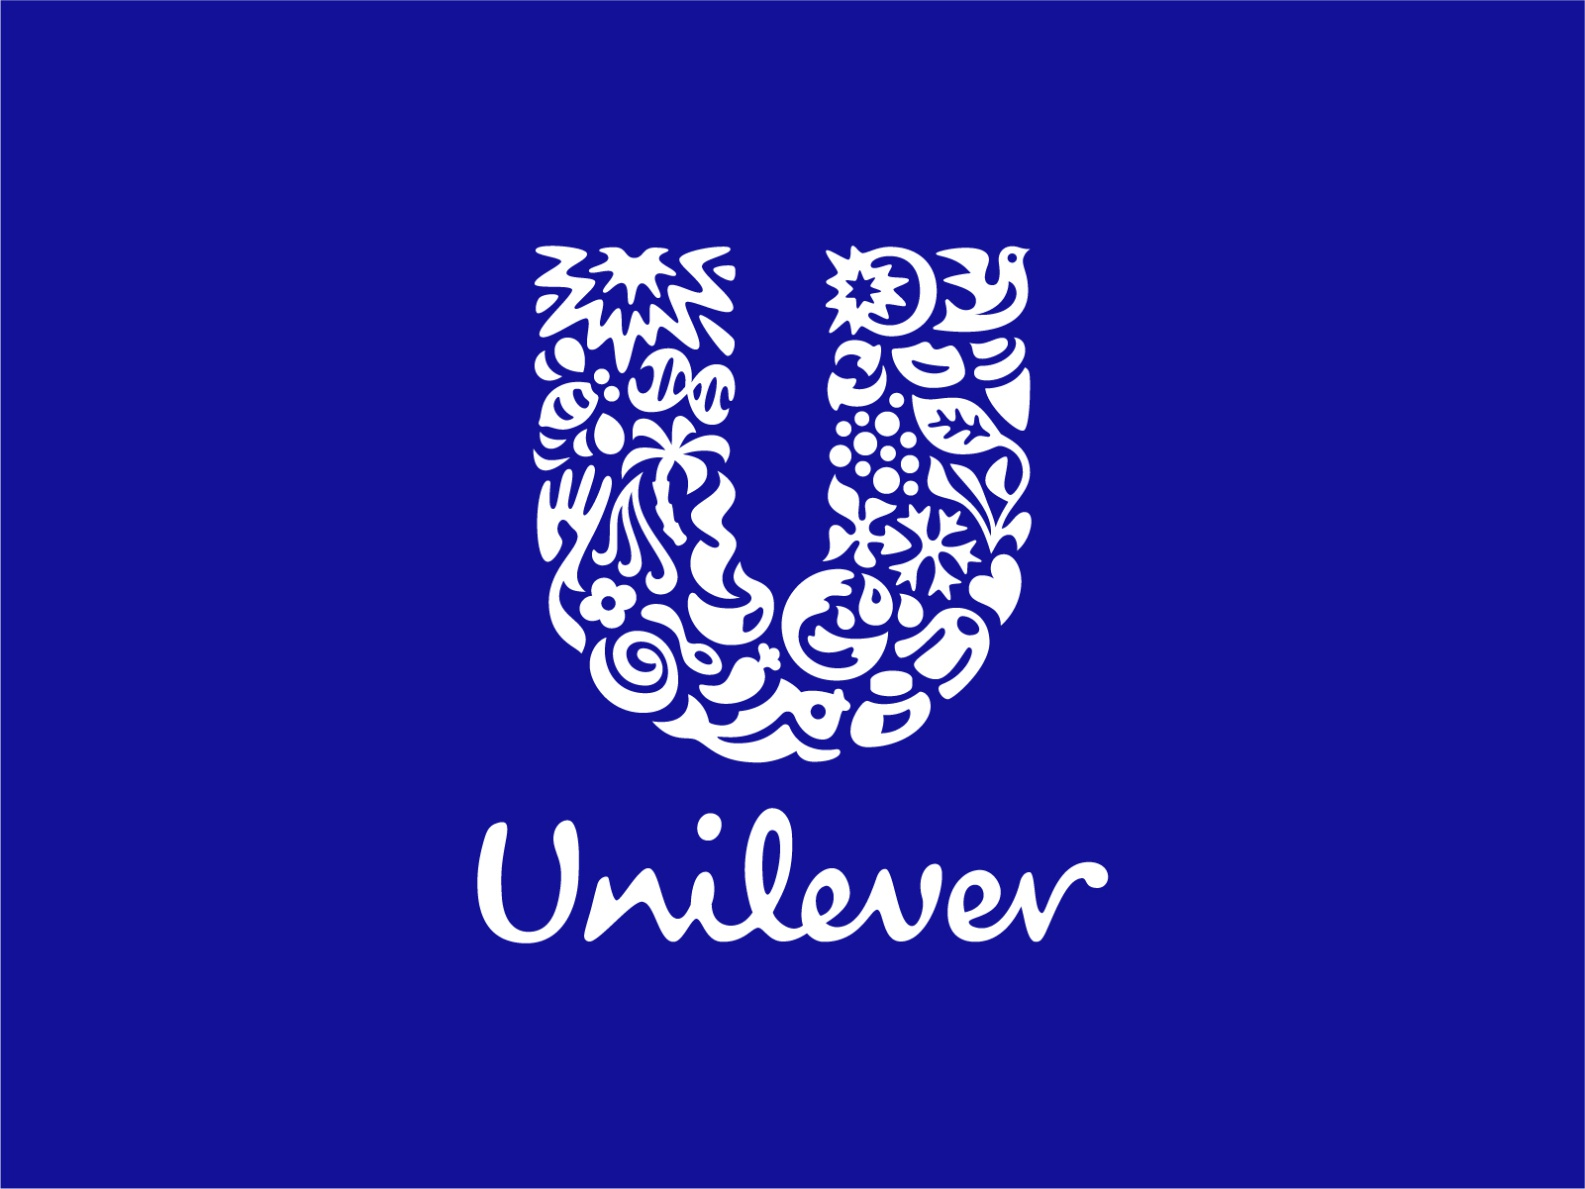 Unilever logo by Miles Newlyn on Dribbble